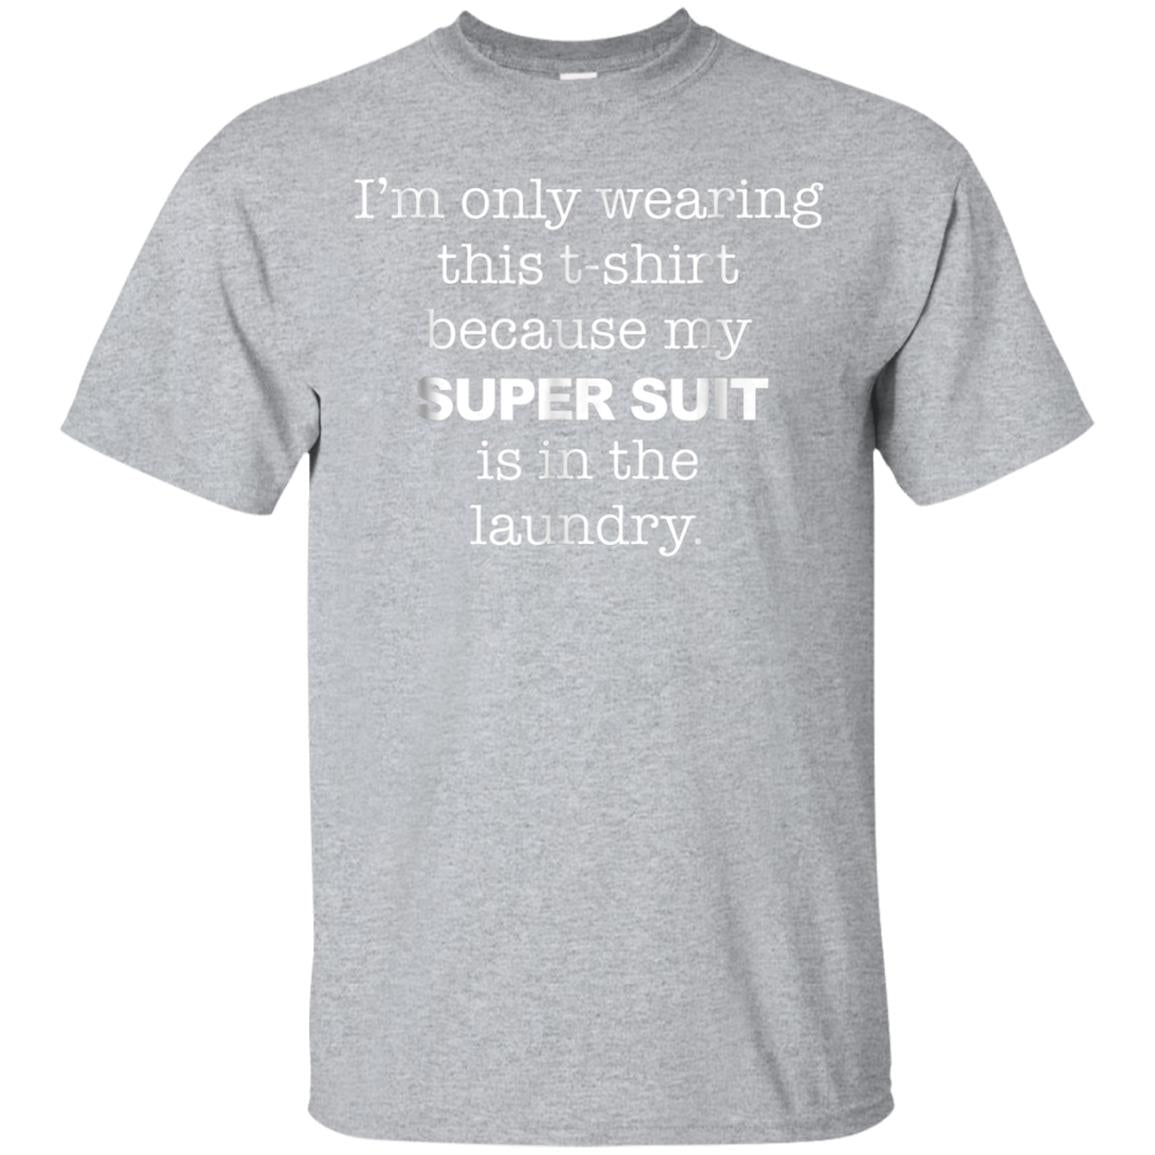 Super Suit's in the Laundry Funny T Shirt 99promocode